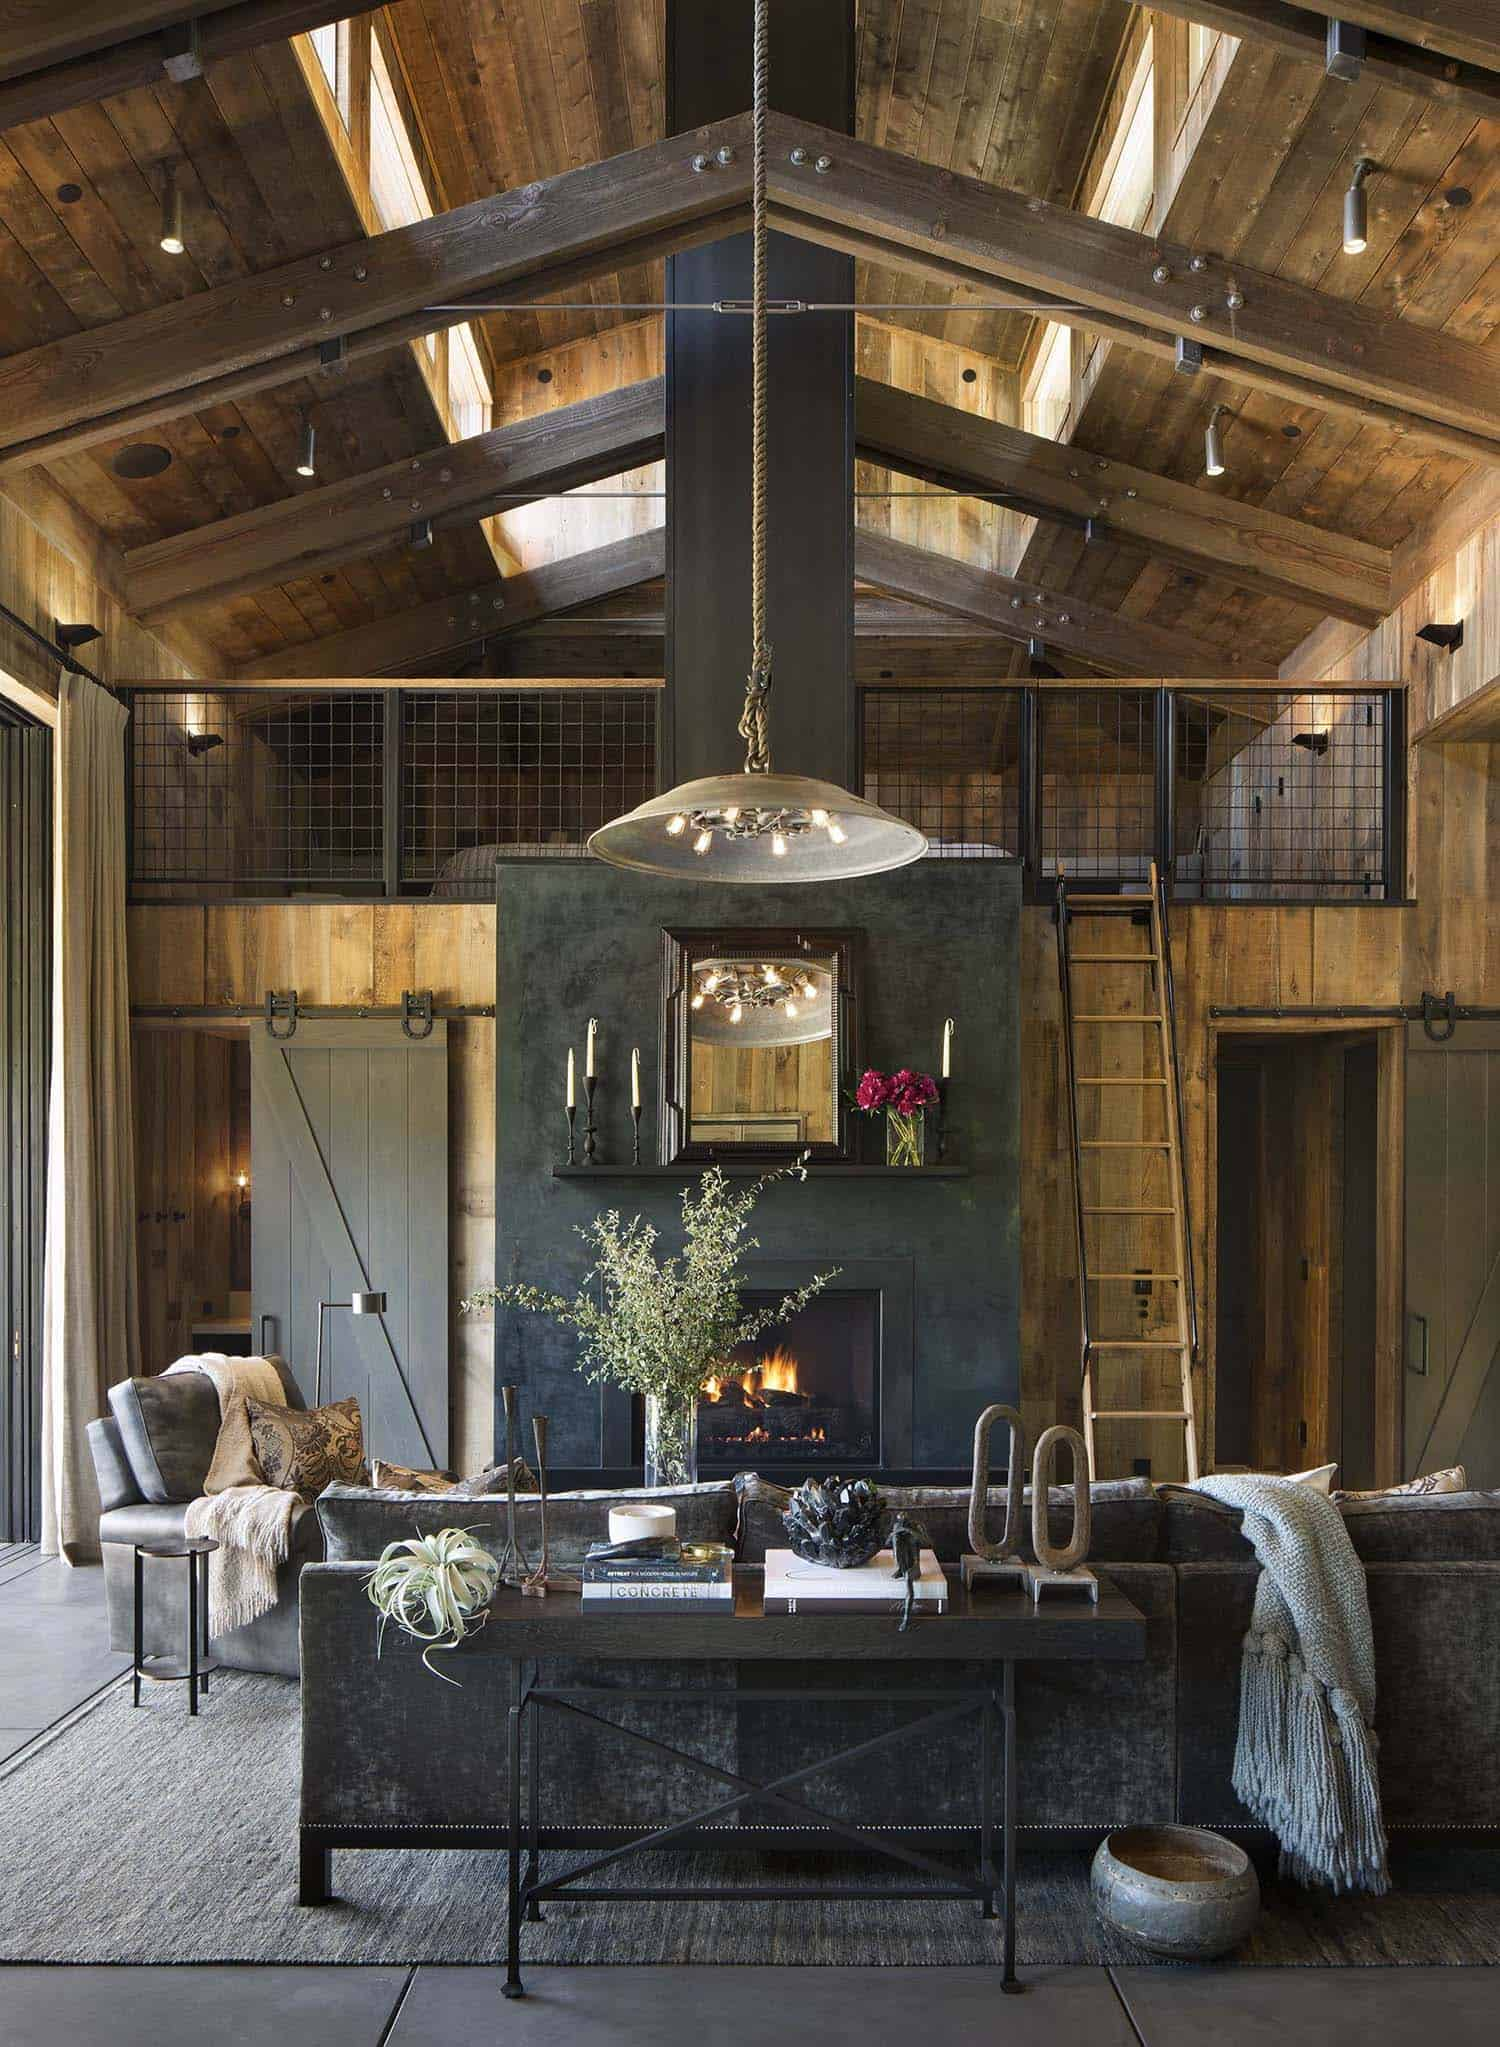 The rustic living room looks up to a cathedral ceiling with large wood beams with a barn style roof with upper windows shedding light onto the entire space. One side of the living room has a ladder leading up to a loft area looking down on the living space.